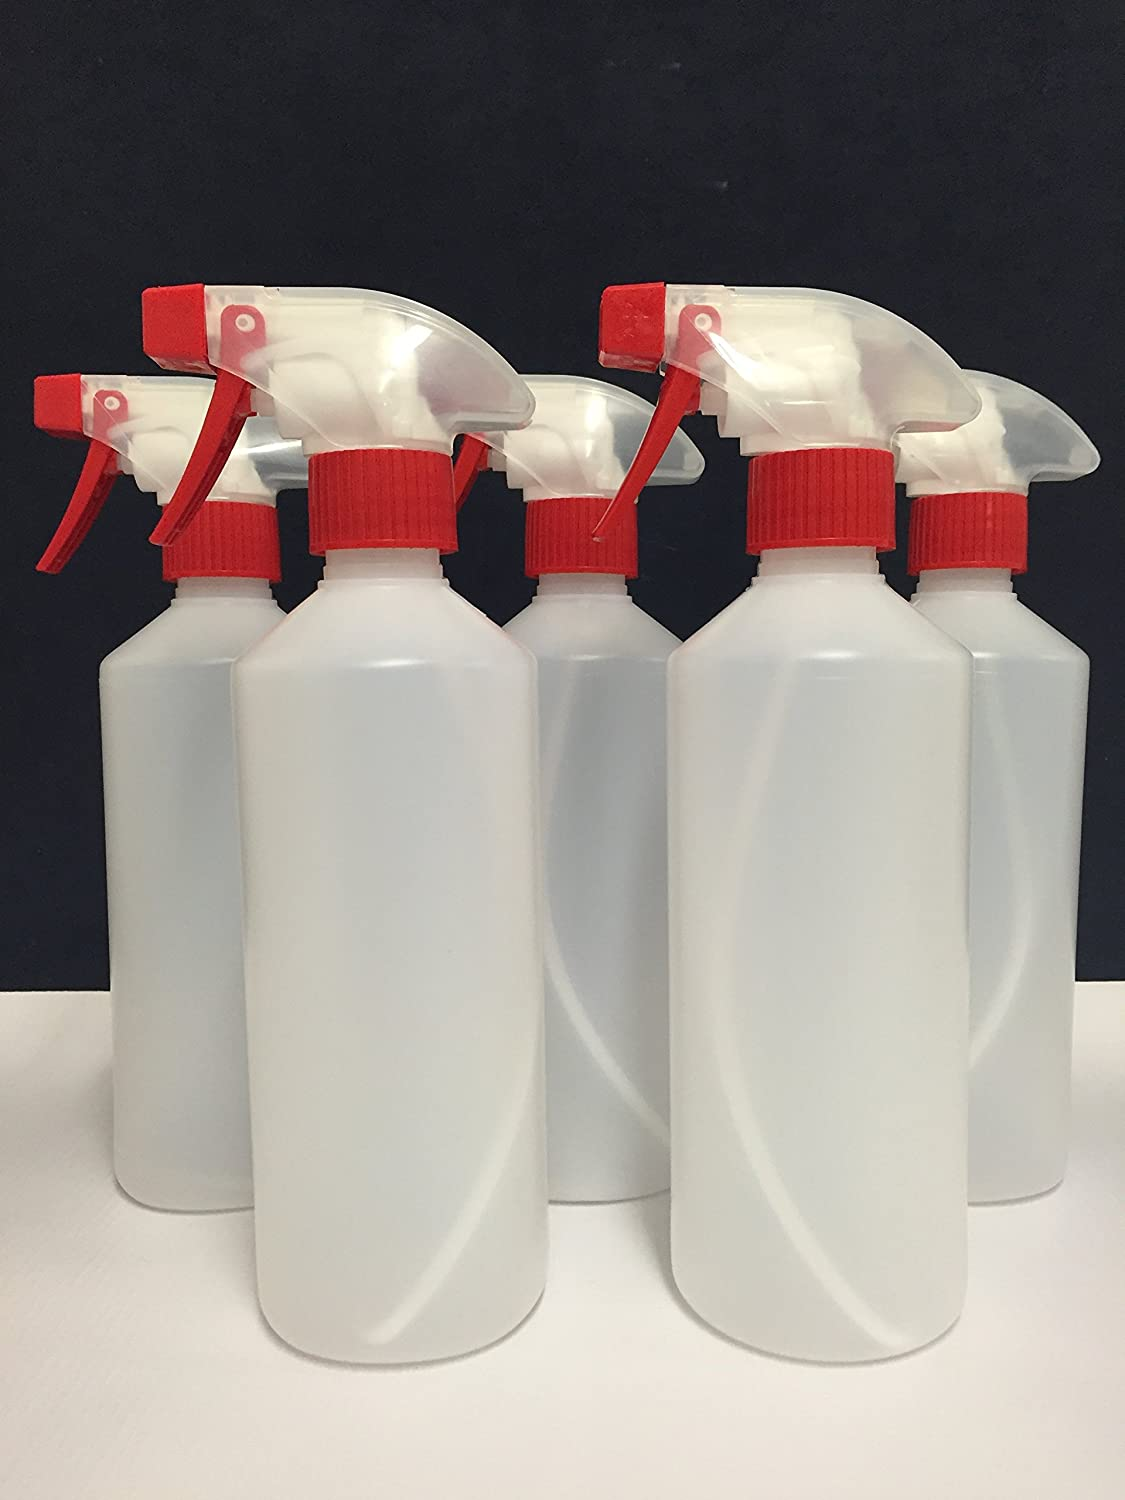 5 x Trigger Spray Bottles 500ML, Valeting, Household Cleaning Chemical Resistant Trade Chemicals